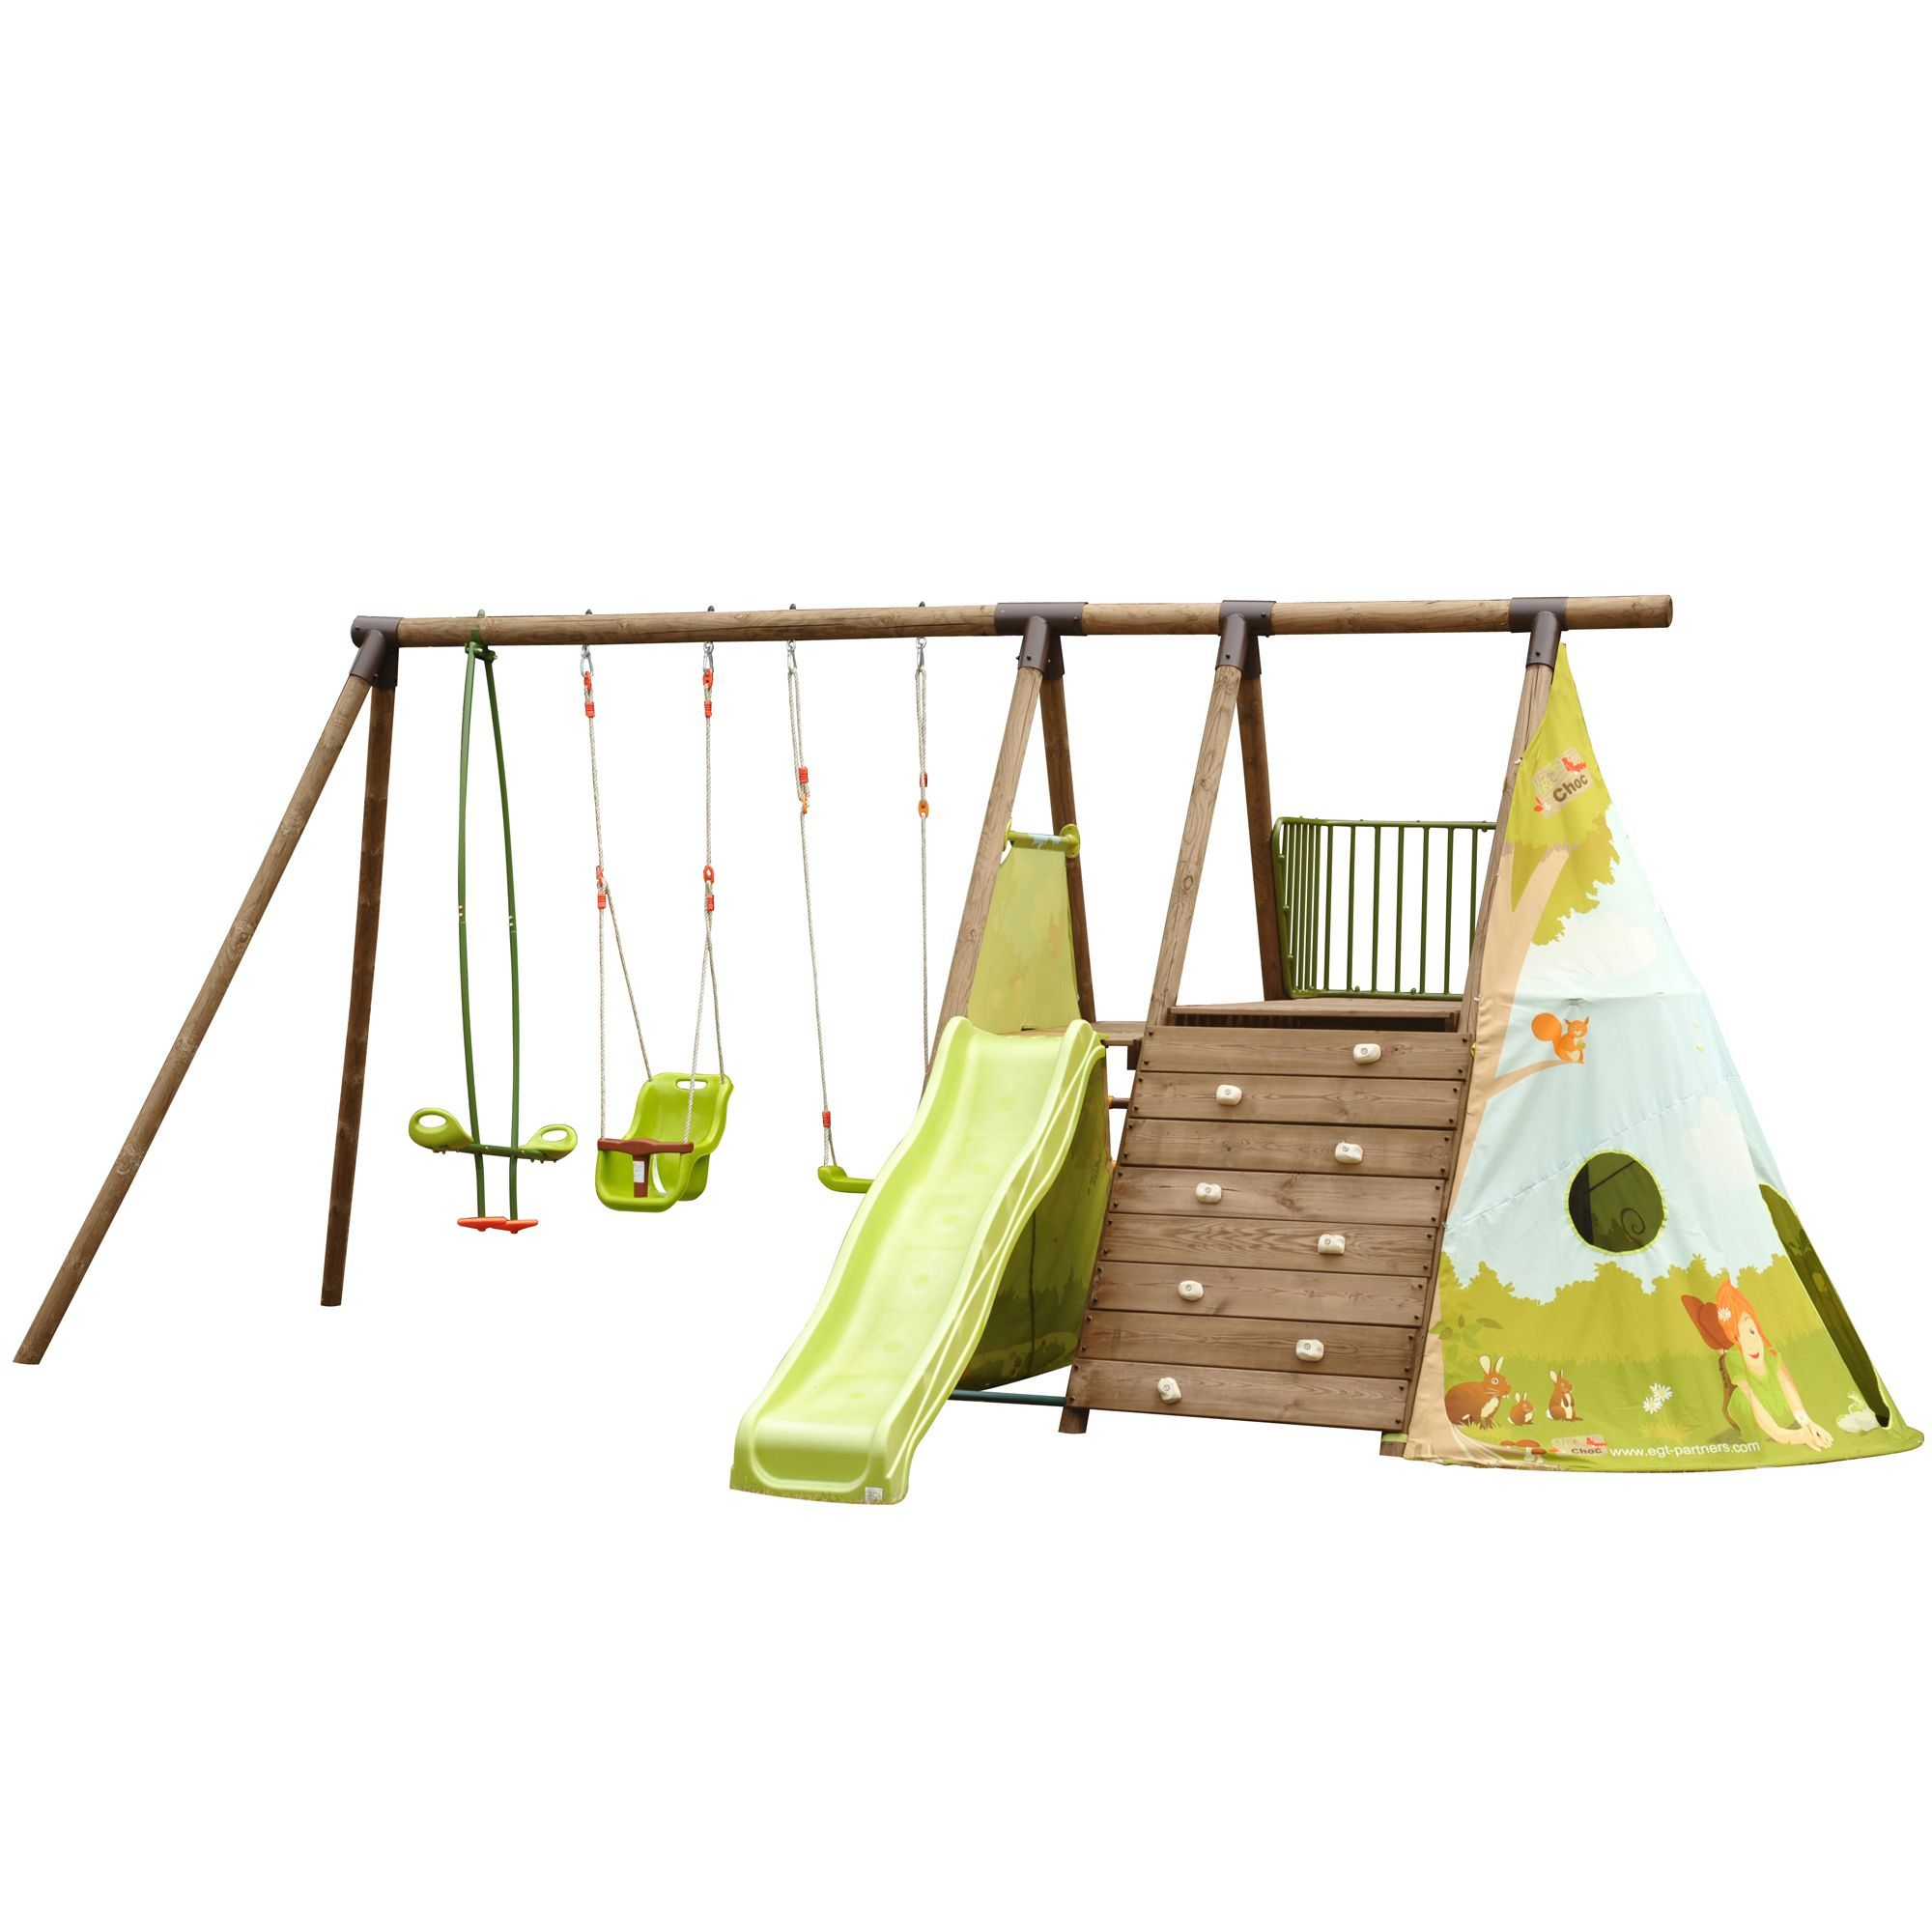 station de jeux en pin pour enfants 5 agr s tipi naturel fort jungle jeux d 39 ext rieur. Black Bedroom Furniture Sets. Home Design Ideas